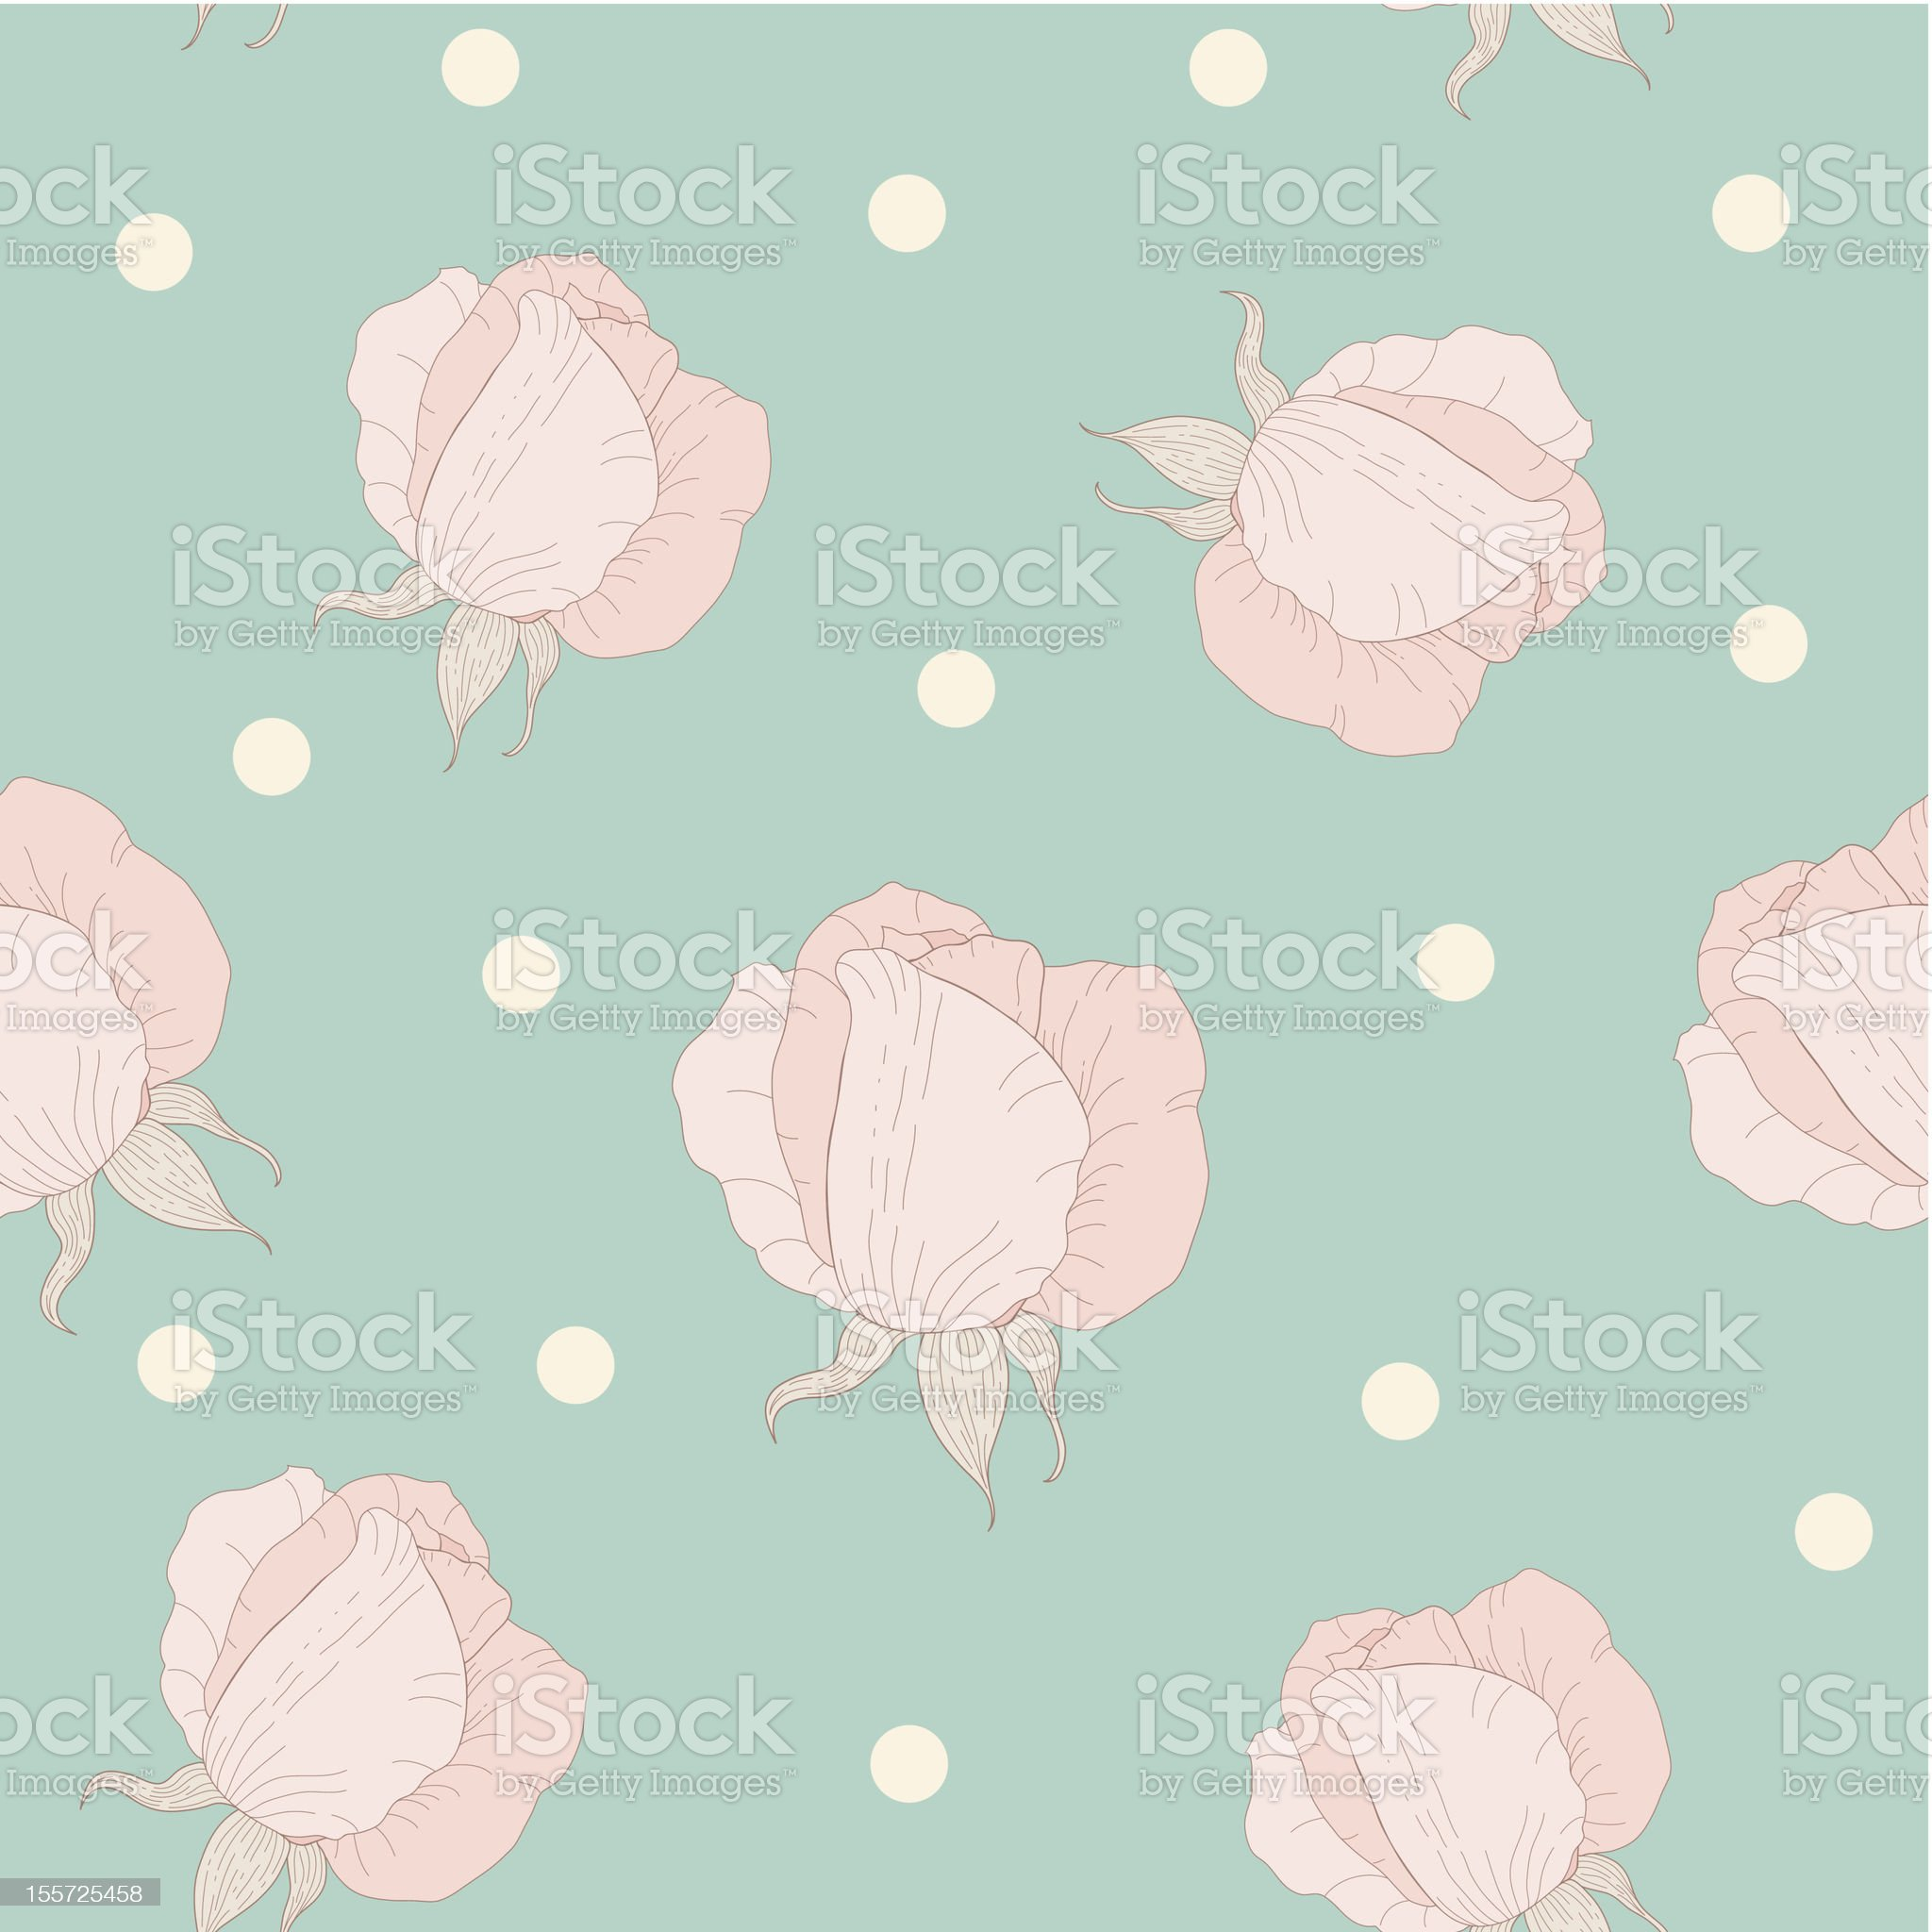 Seamless wallpaper pattern with roses. royalty-free stock vector art